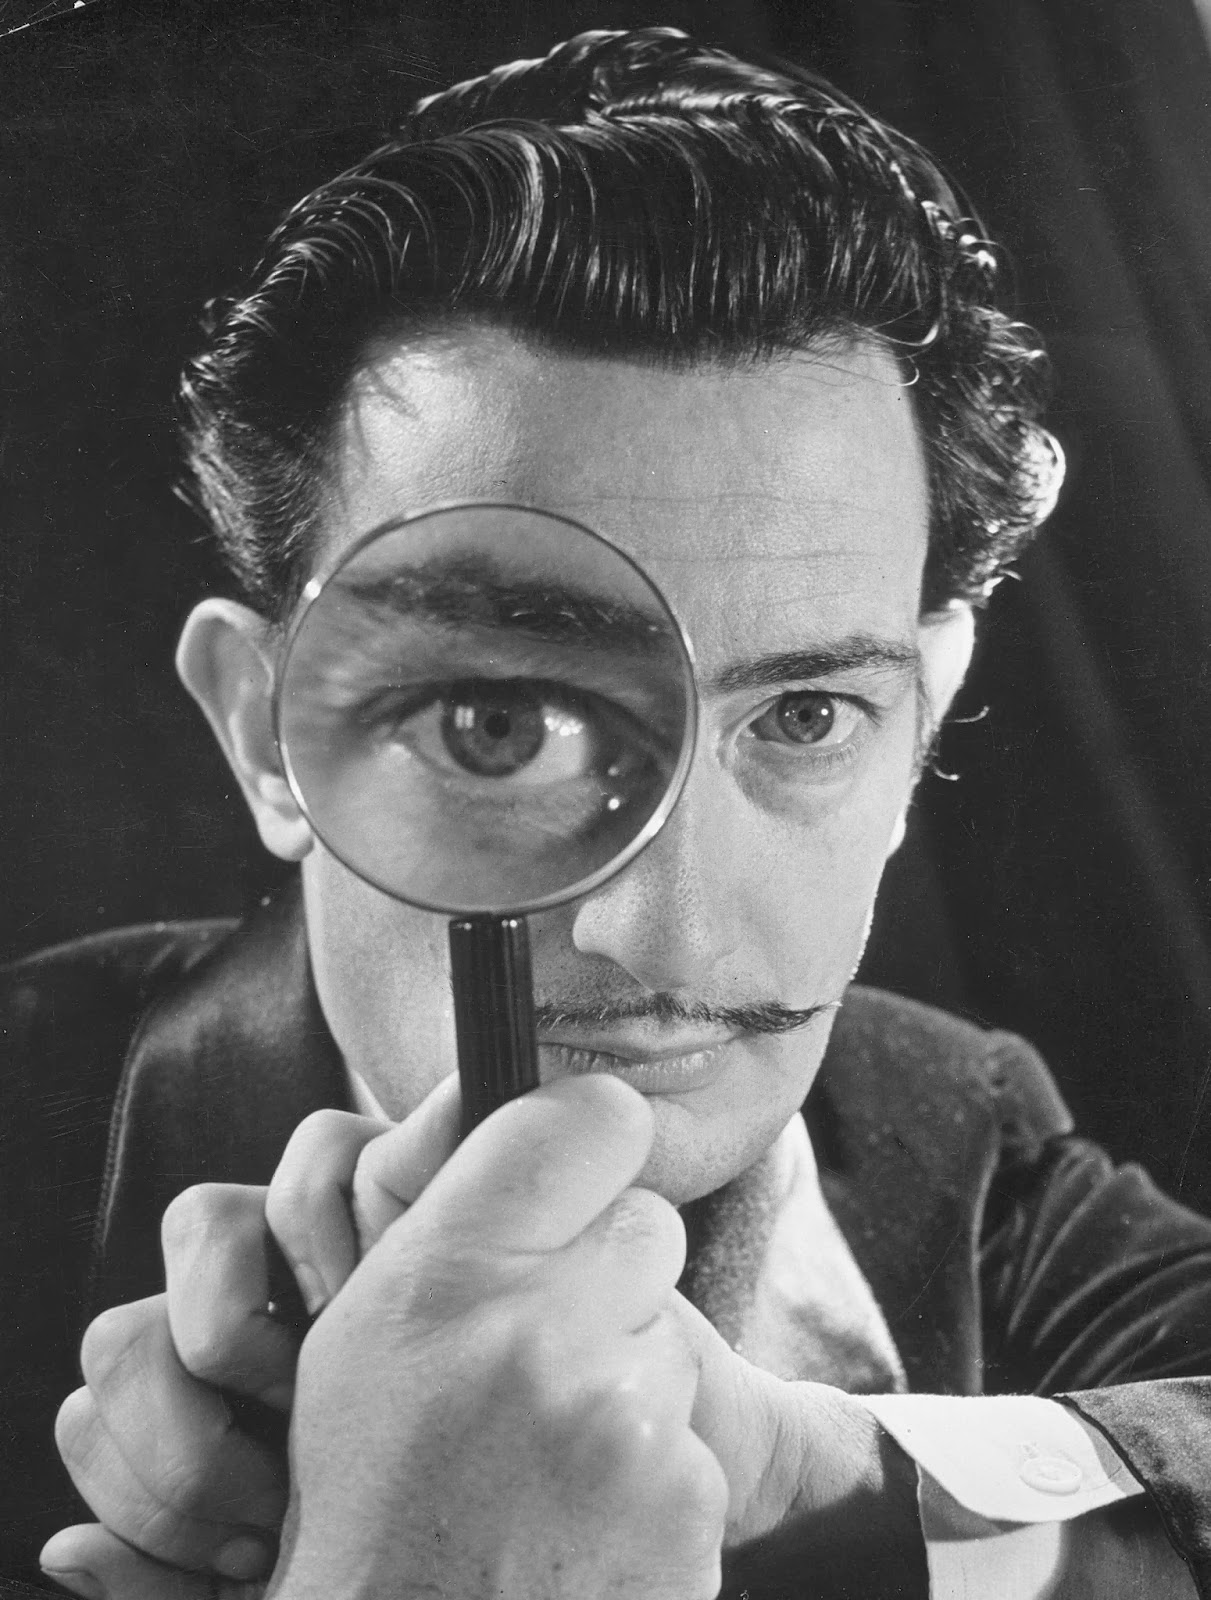 IT Uomo: Salvador Dalí, artista